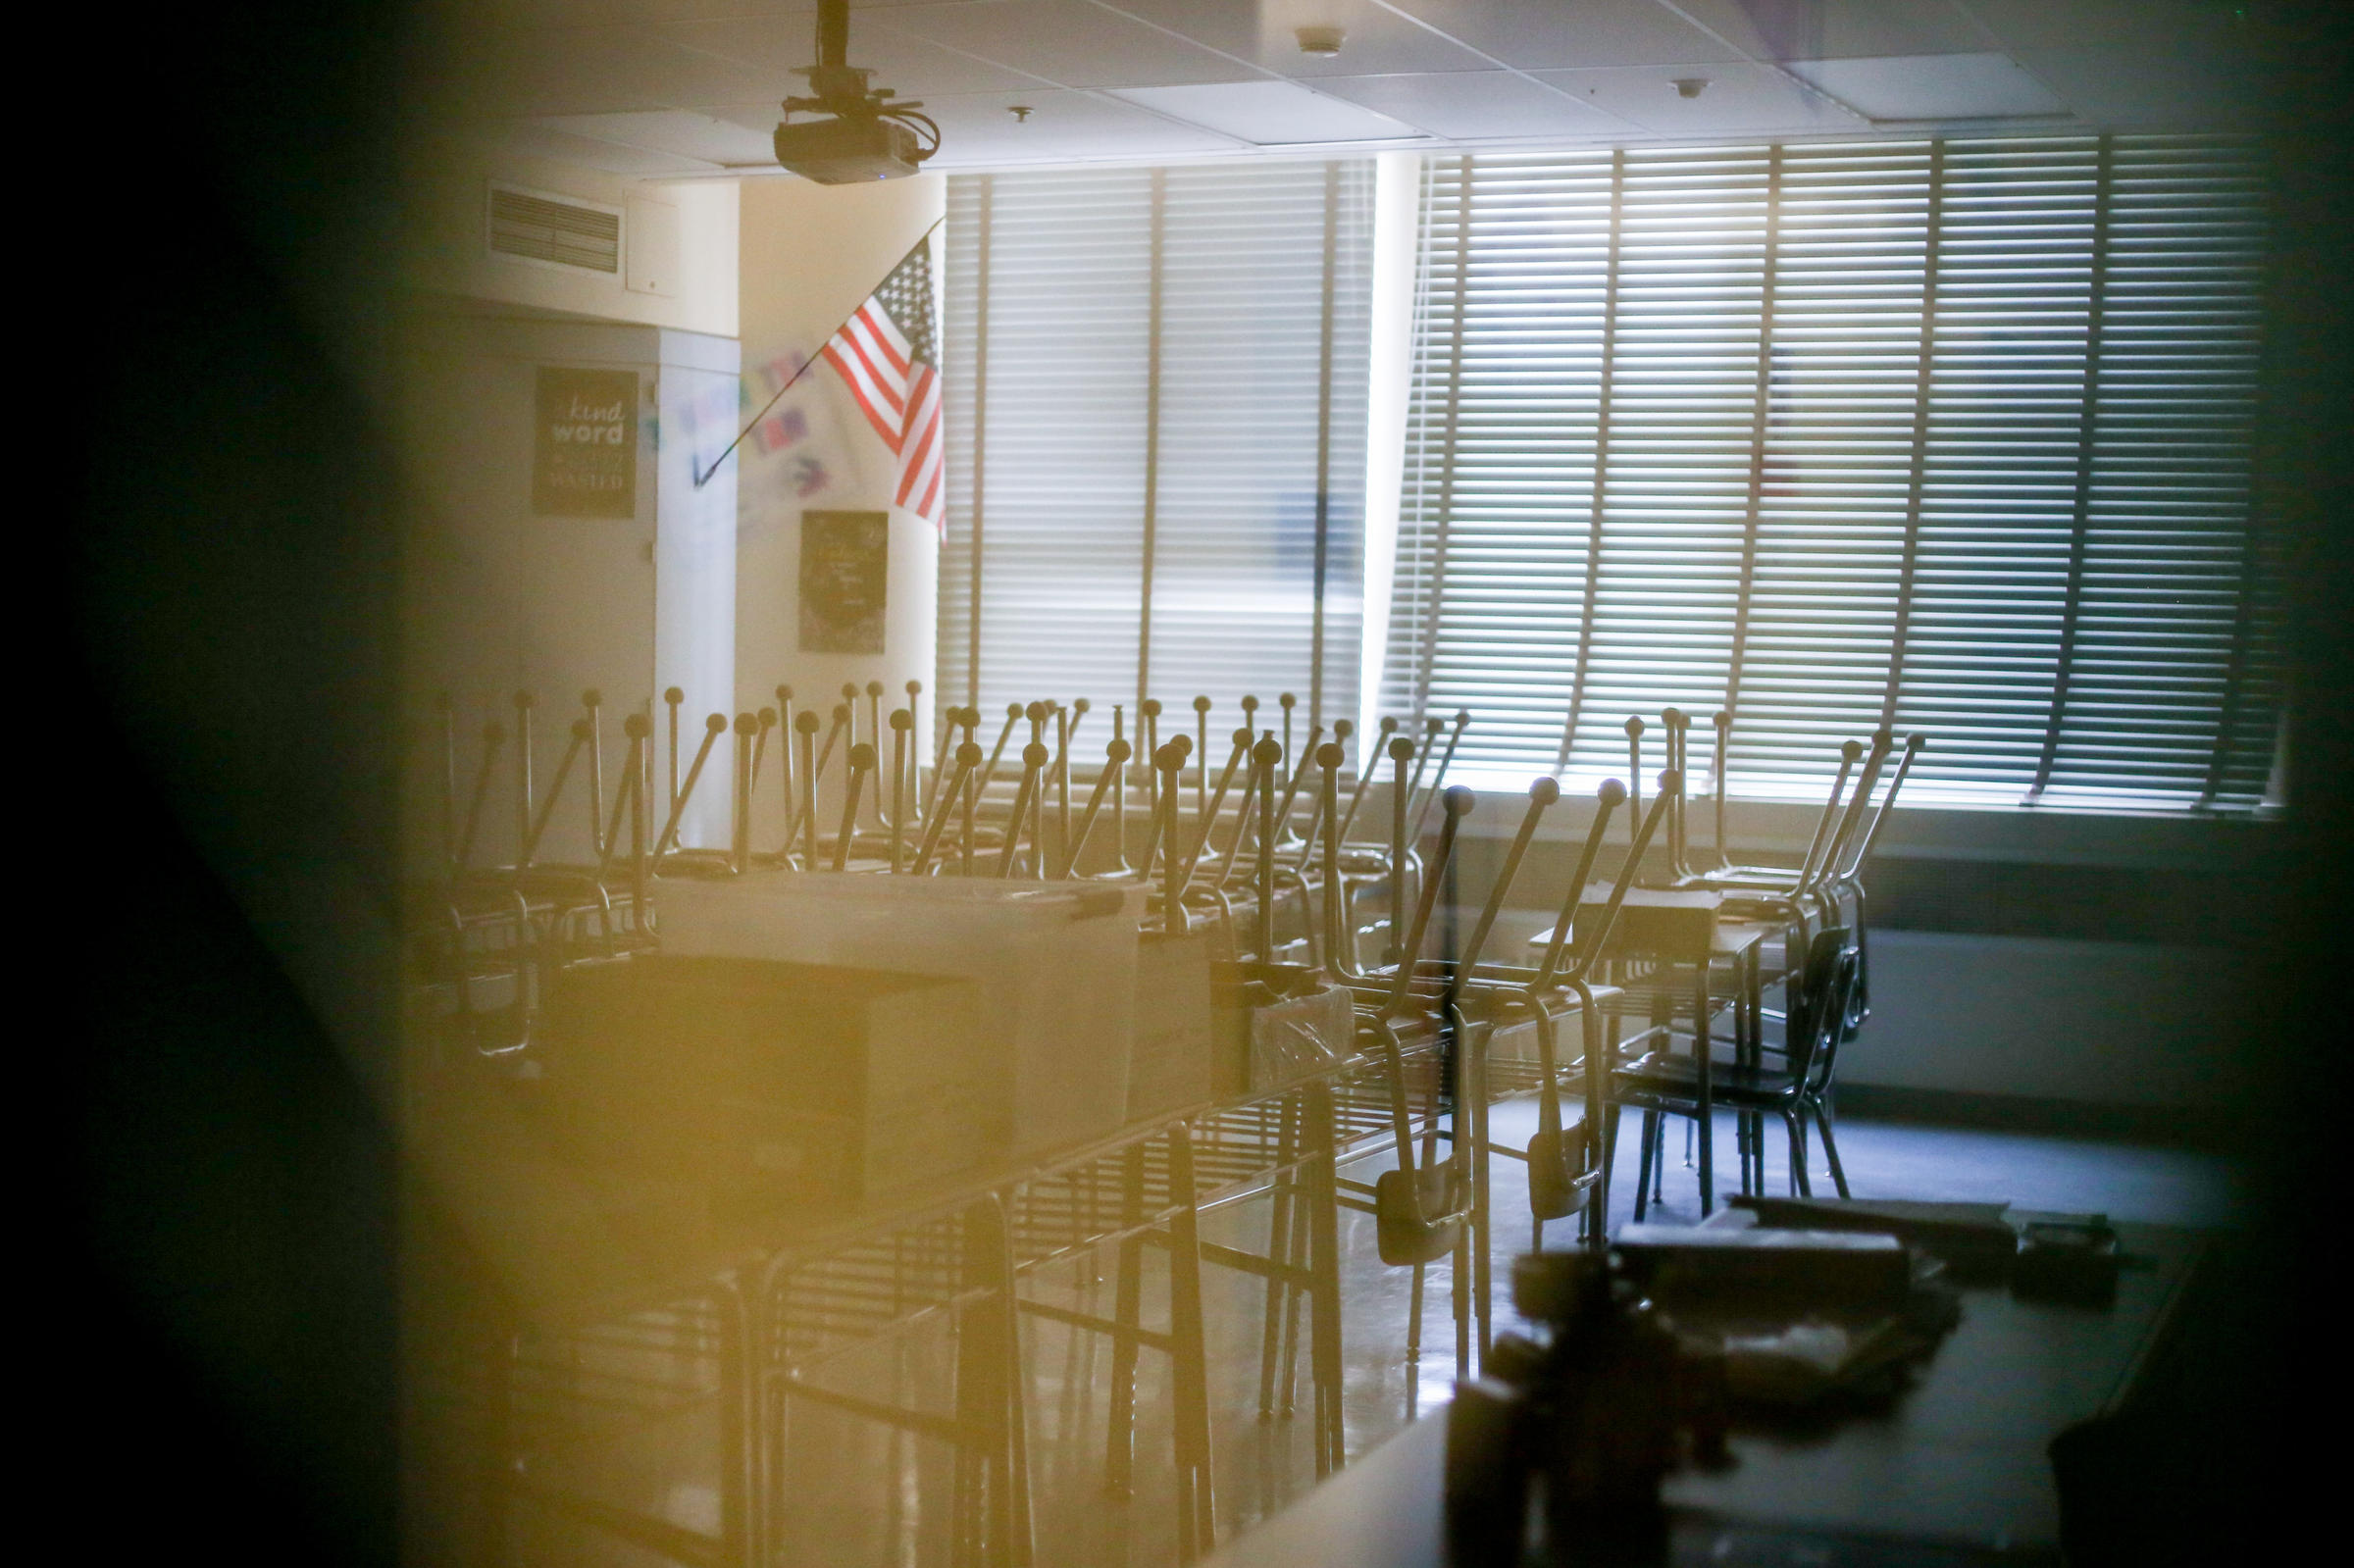 Movies Worksheets Computer Time Inside La Schools During The Teacher Strike